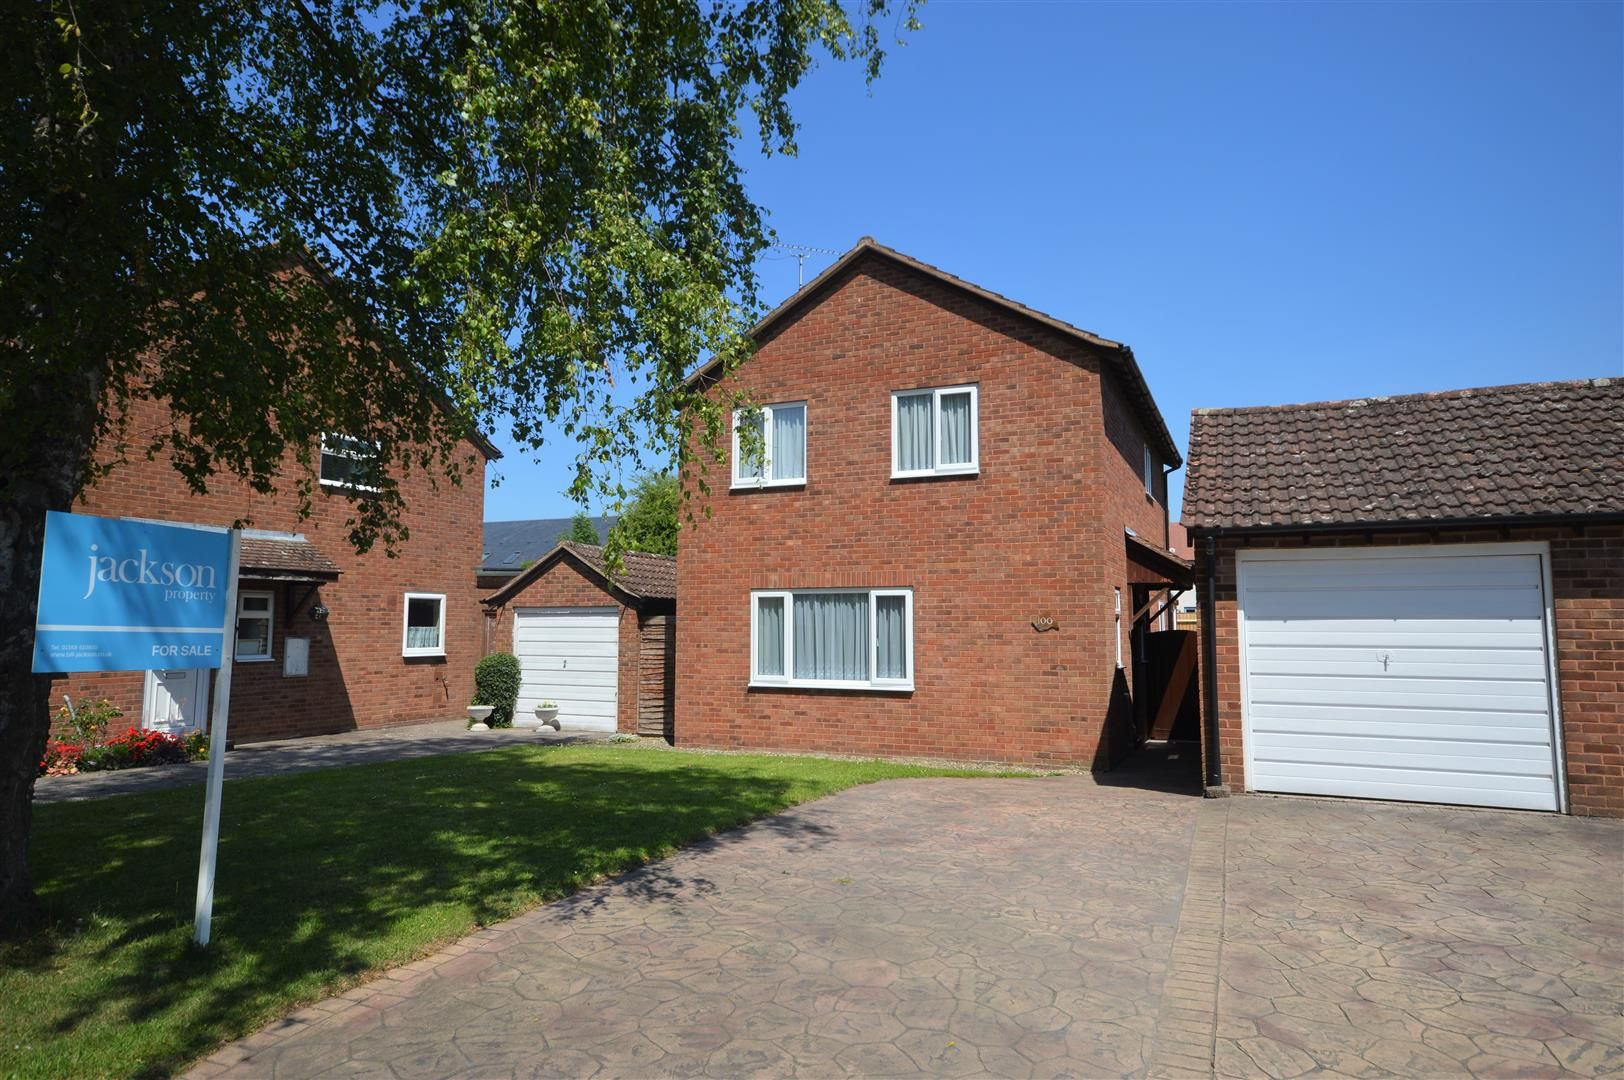 4 bed detached for sale in Weobley, HR4